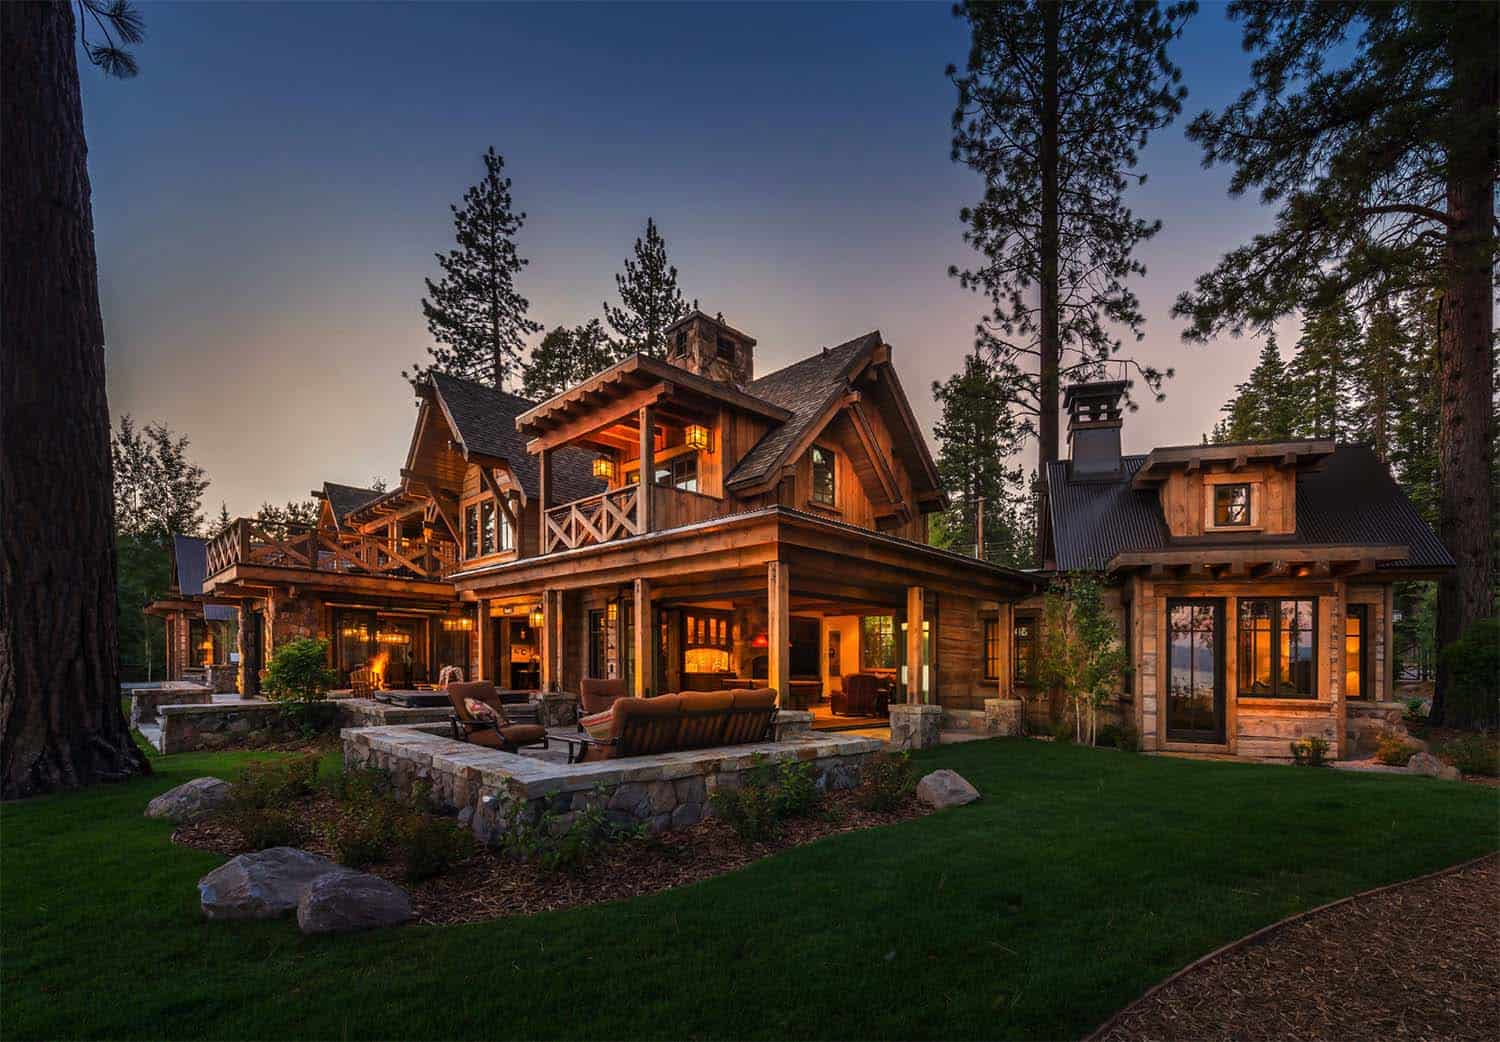 mountain-lake-house-rustic-exterior